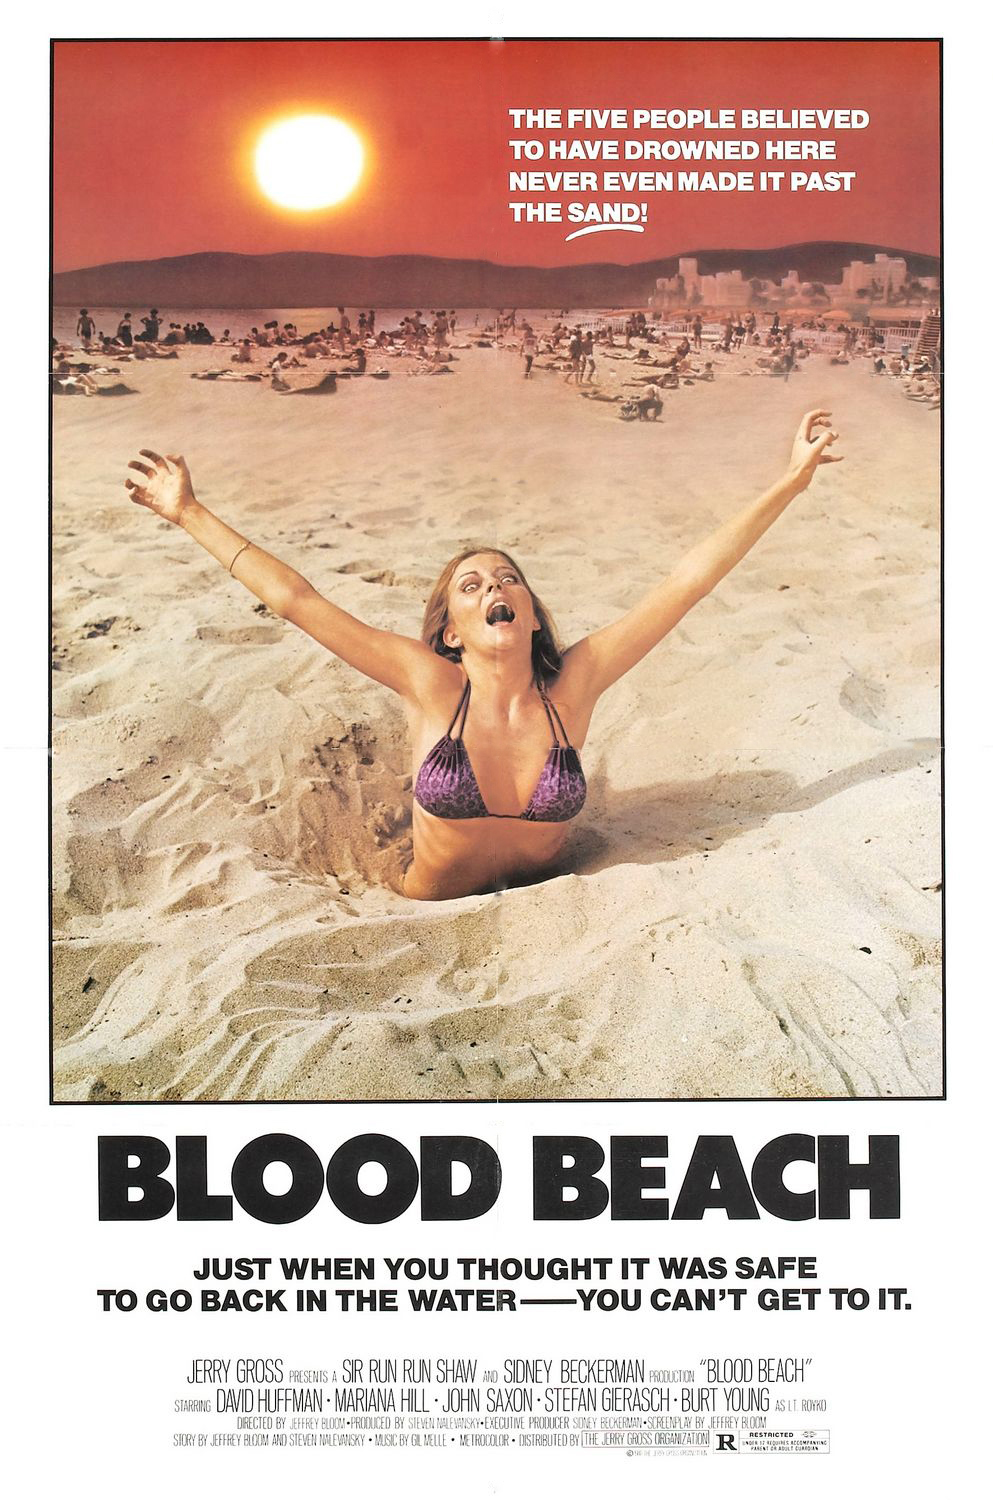 blood beach poster 2 edited 1 - This Week in Horror Movie History - Blood Beach (1981)